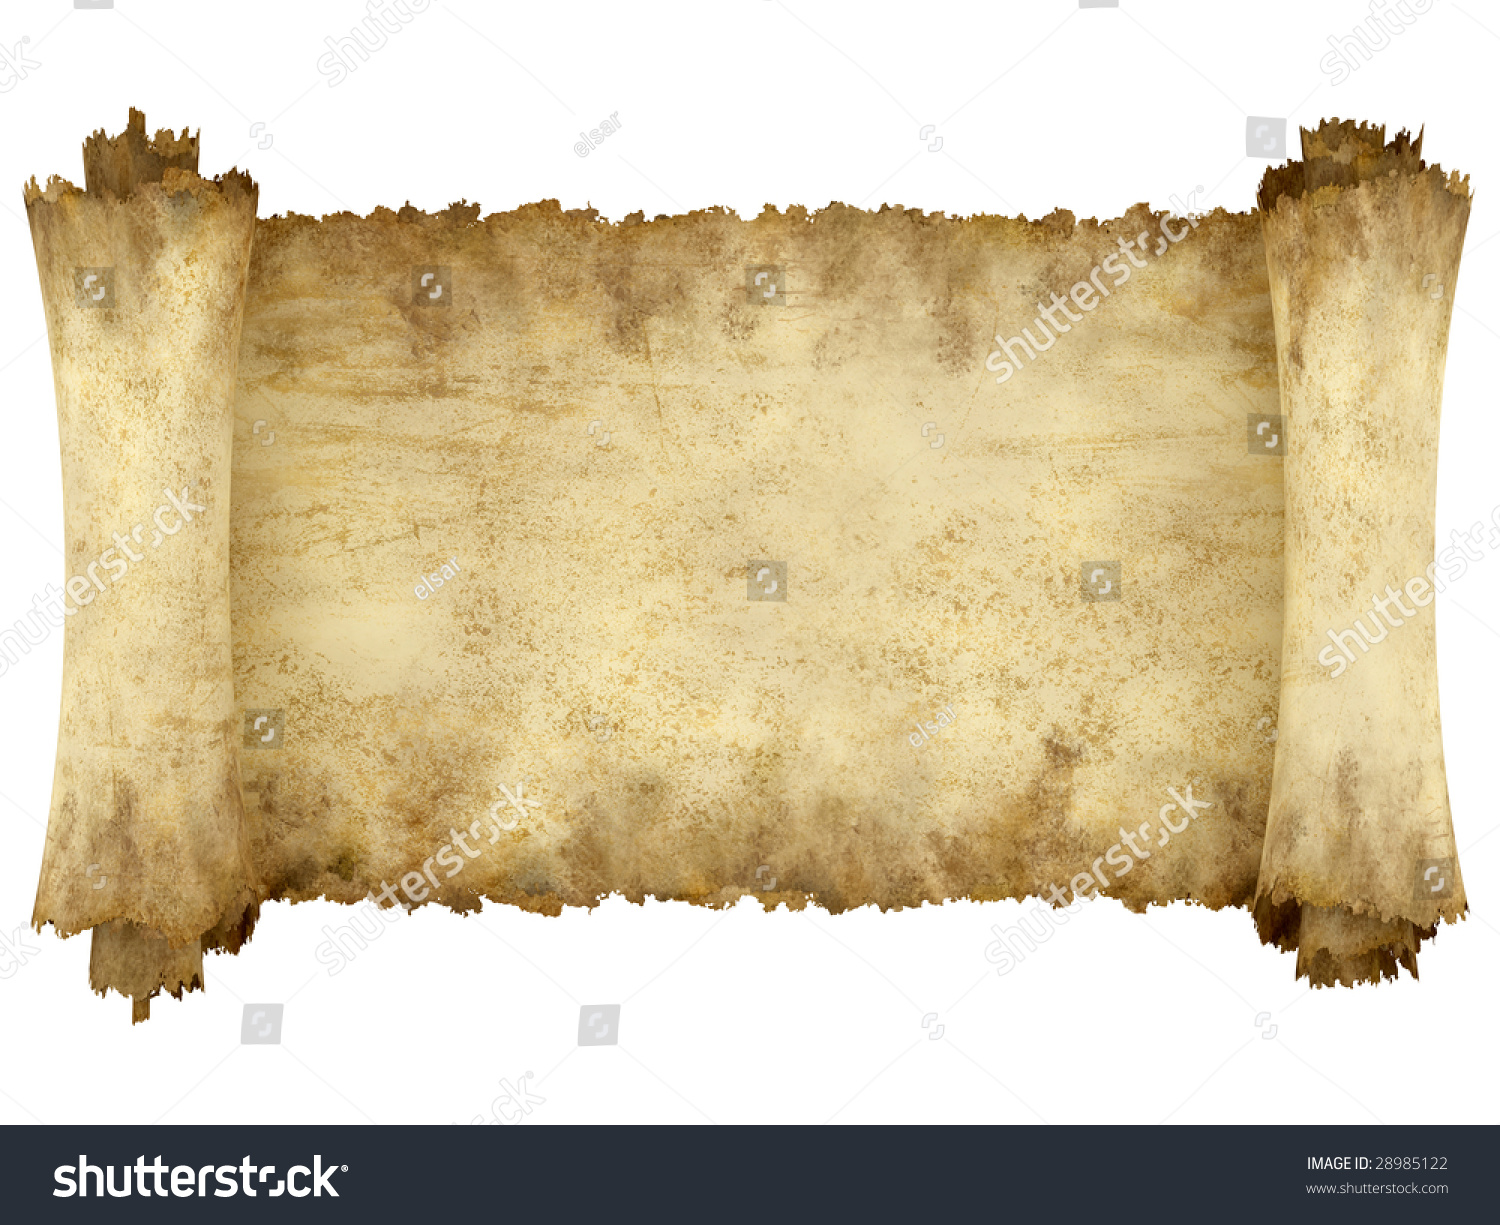 Manuscript Horizontal Burnt Rough Roll Of Parchment Paper ...